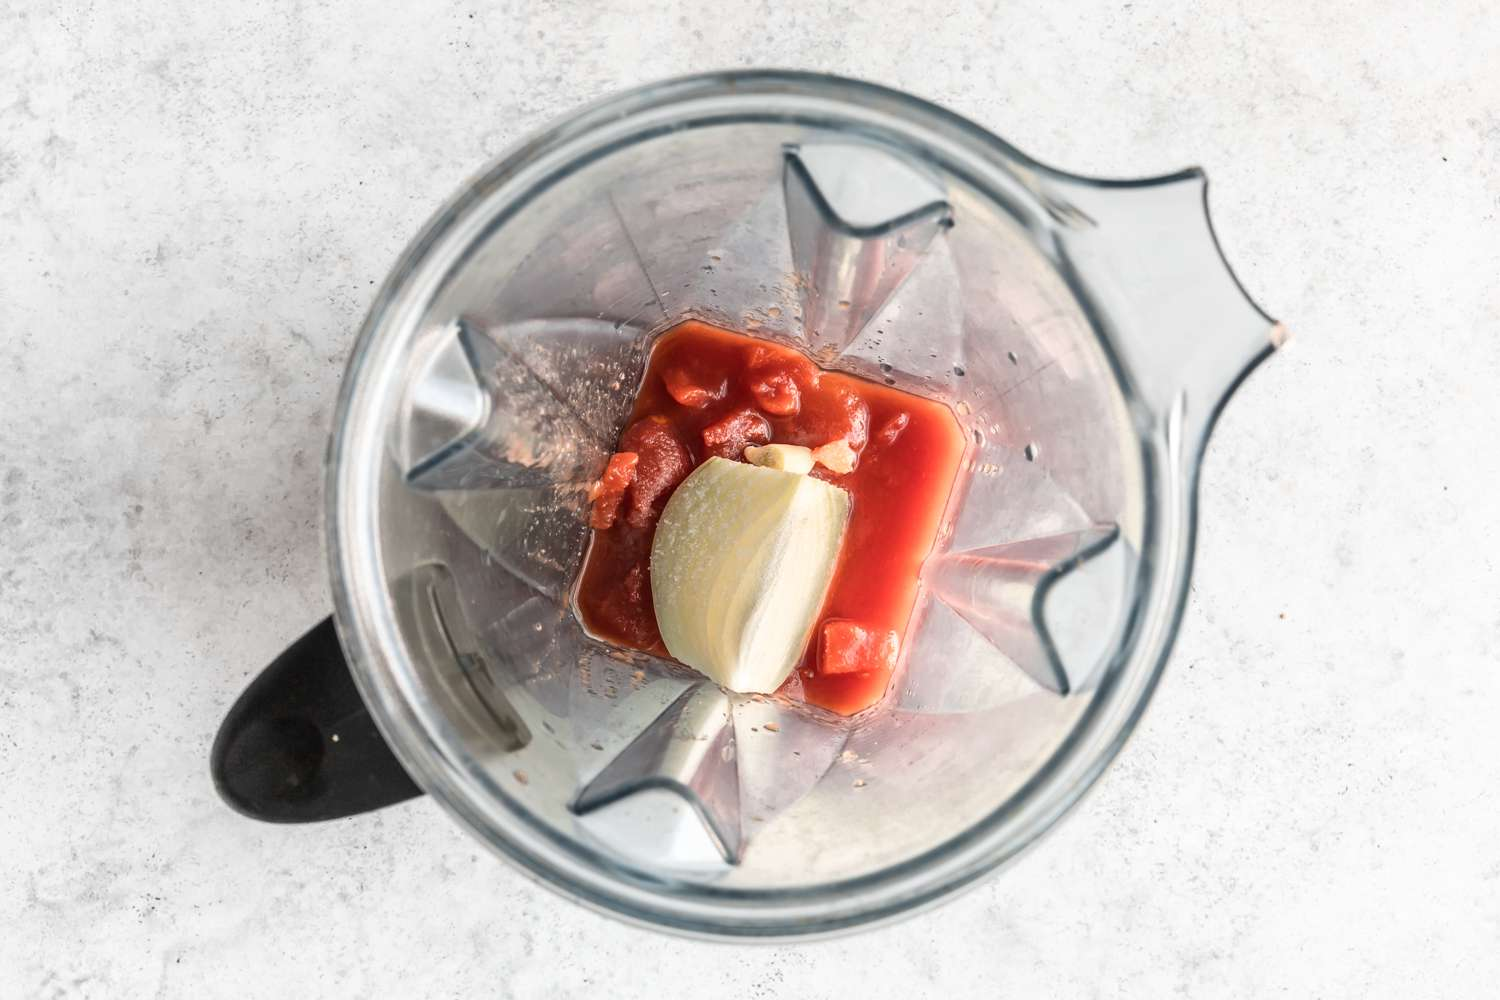 Place the tomatoes, onion, garlic, and salt into a blender